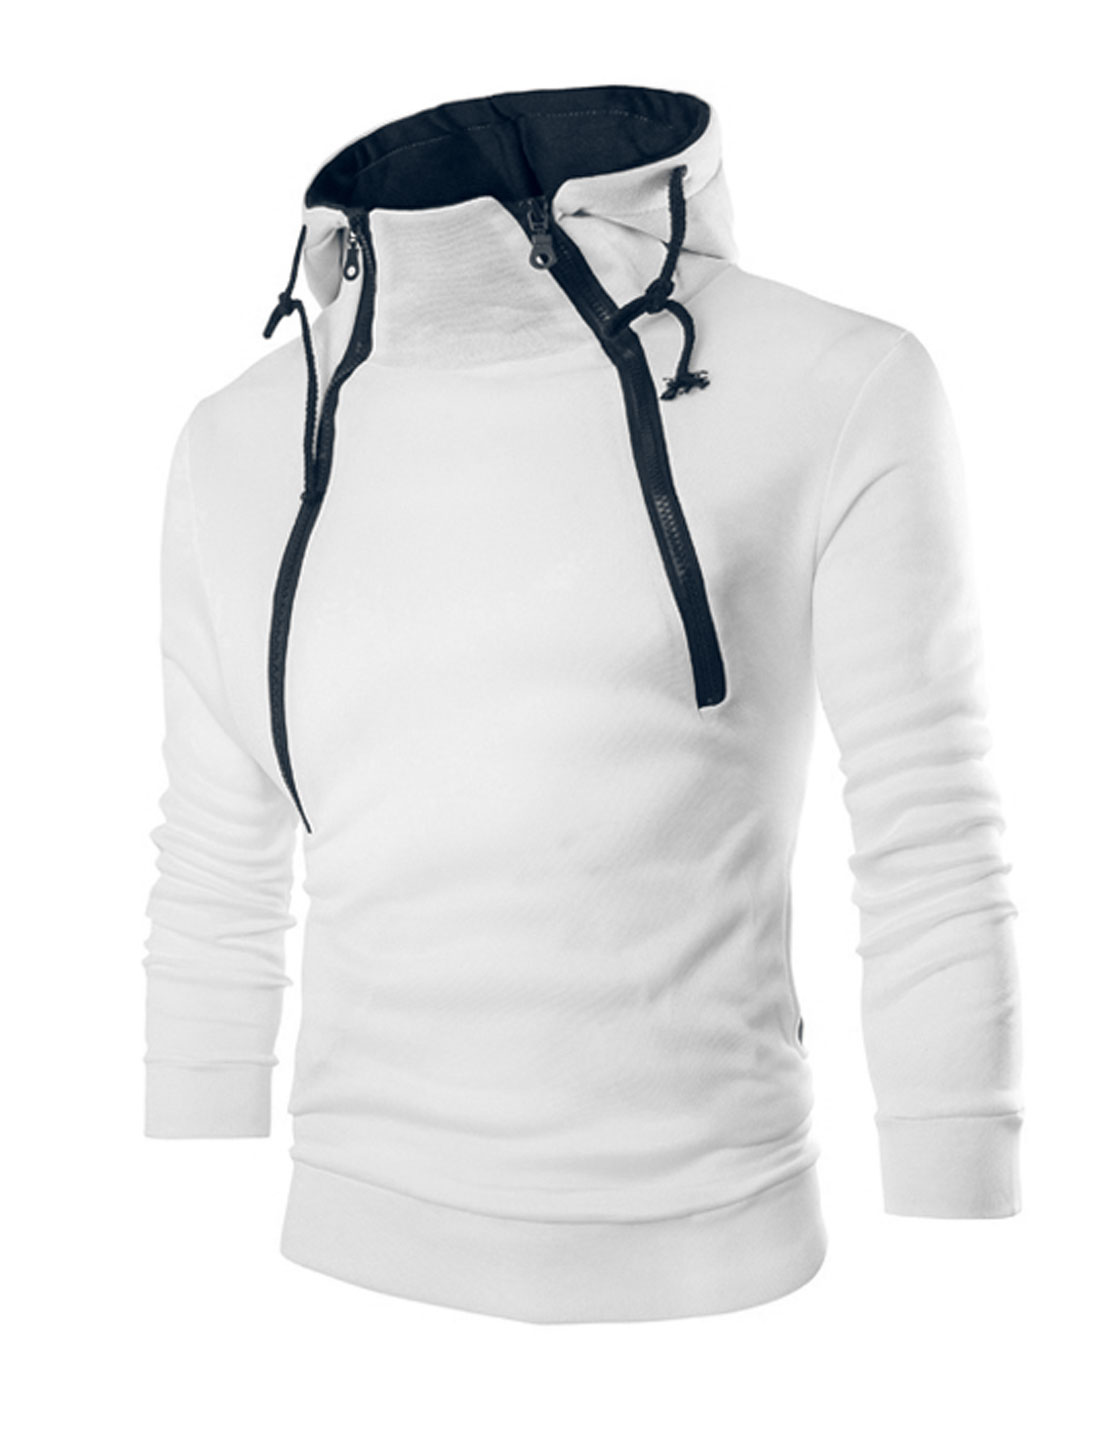 Men Two Inclined Zippers Upper Long Sleeves Drawstring Hoodie White M